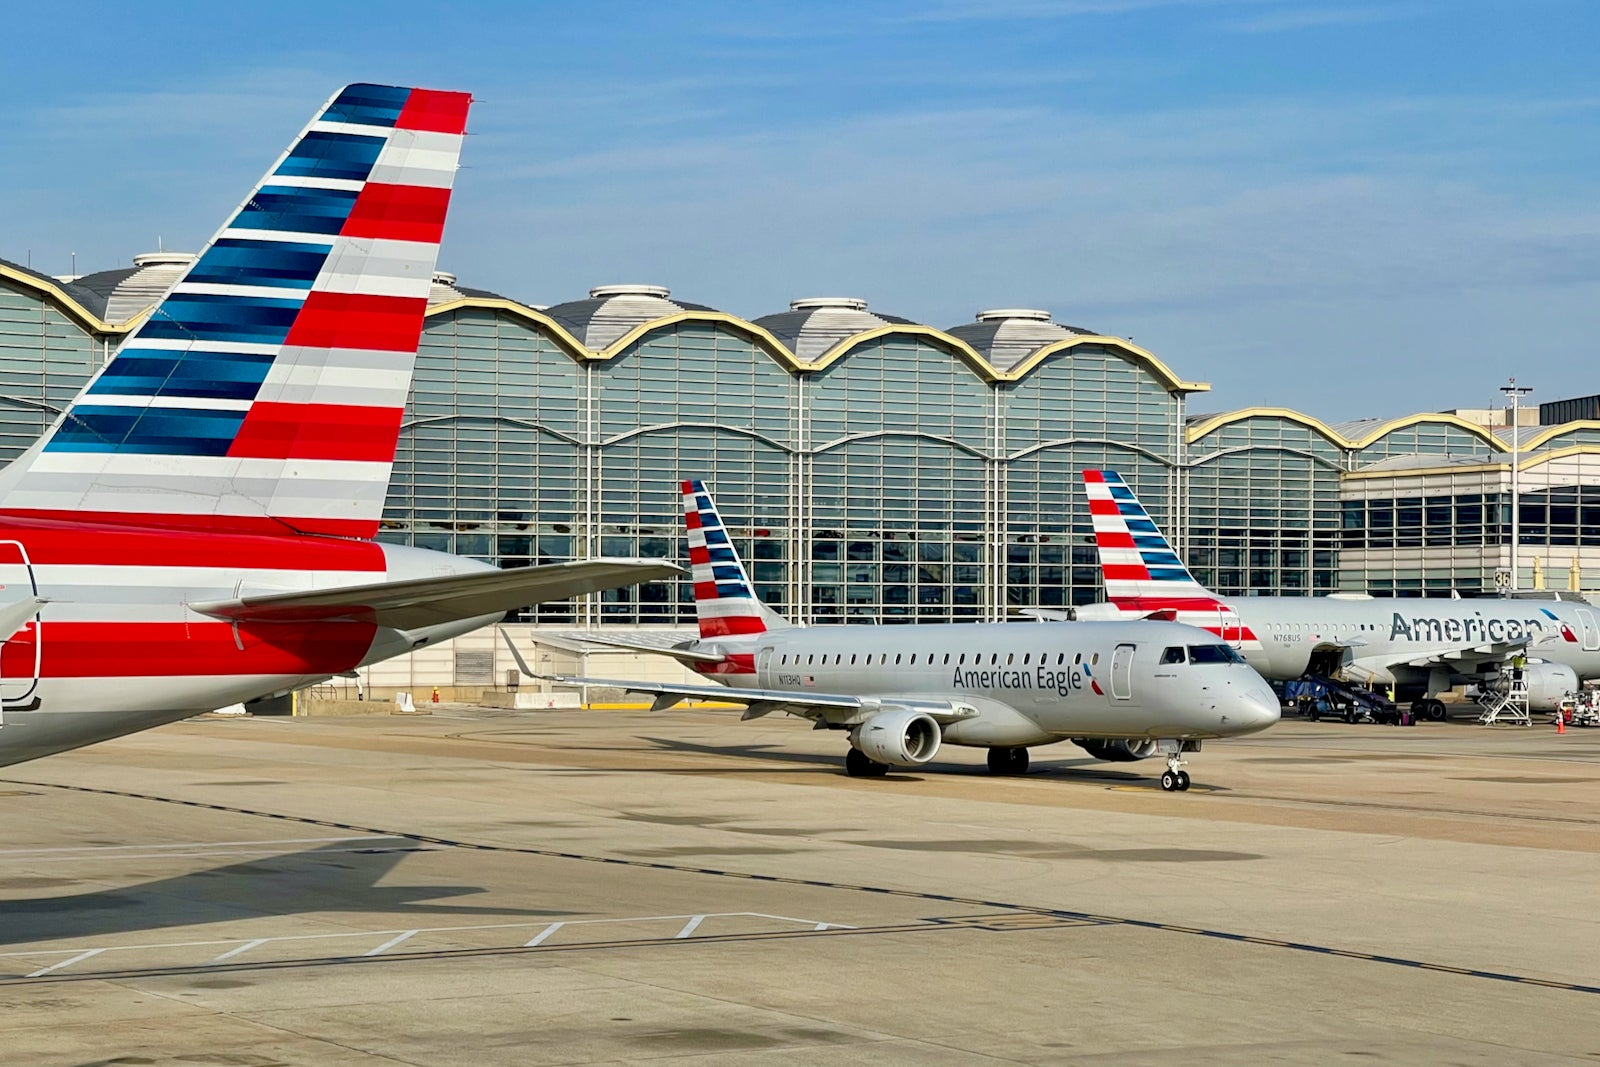 Buying American Airlines miles: Does it make sense?